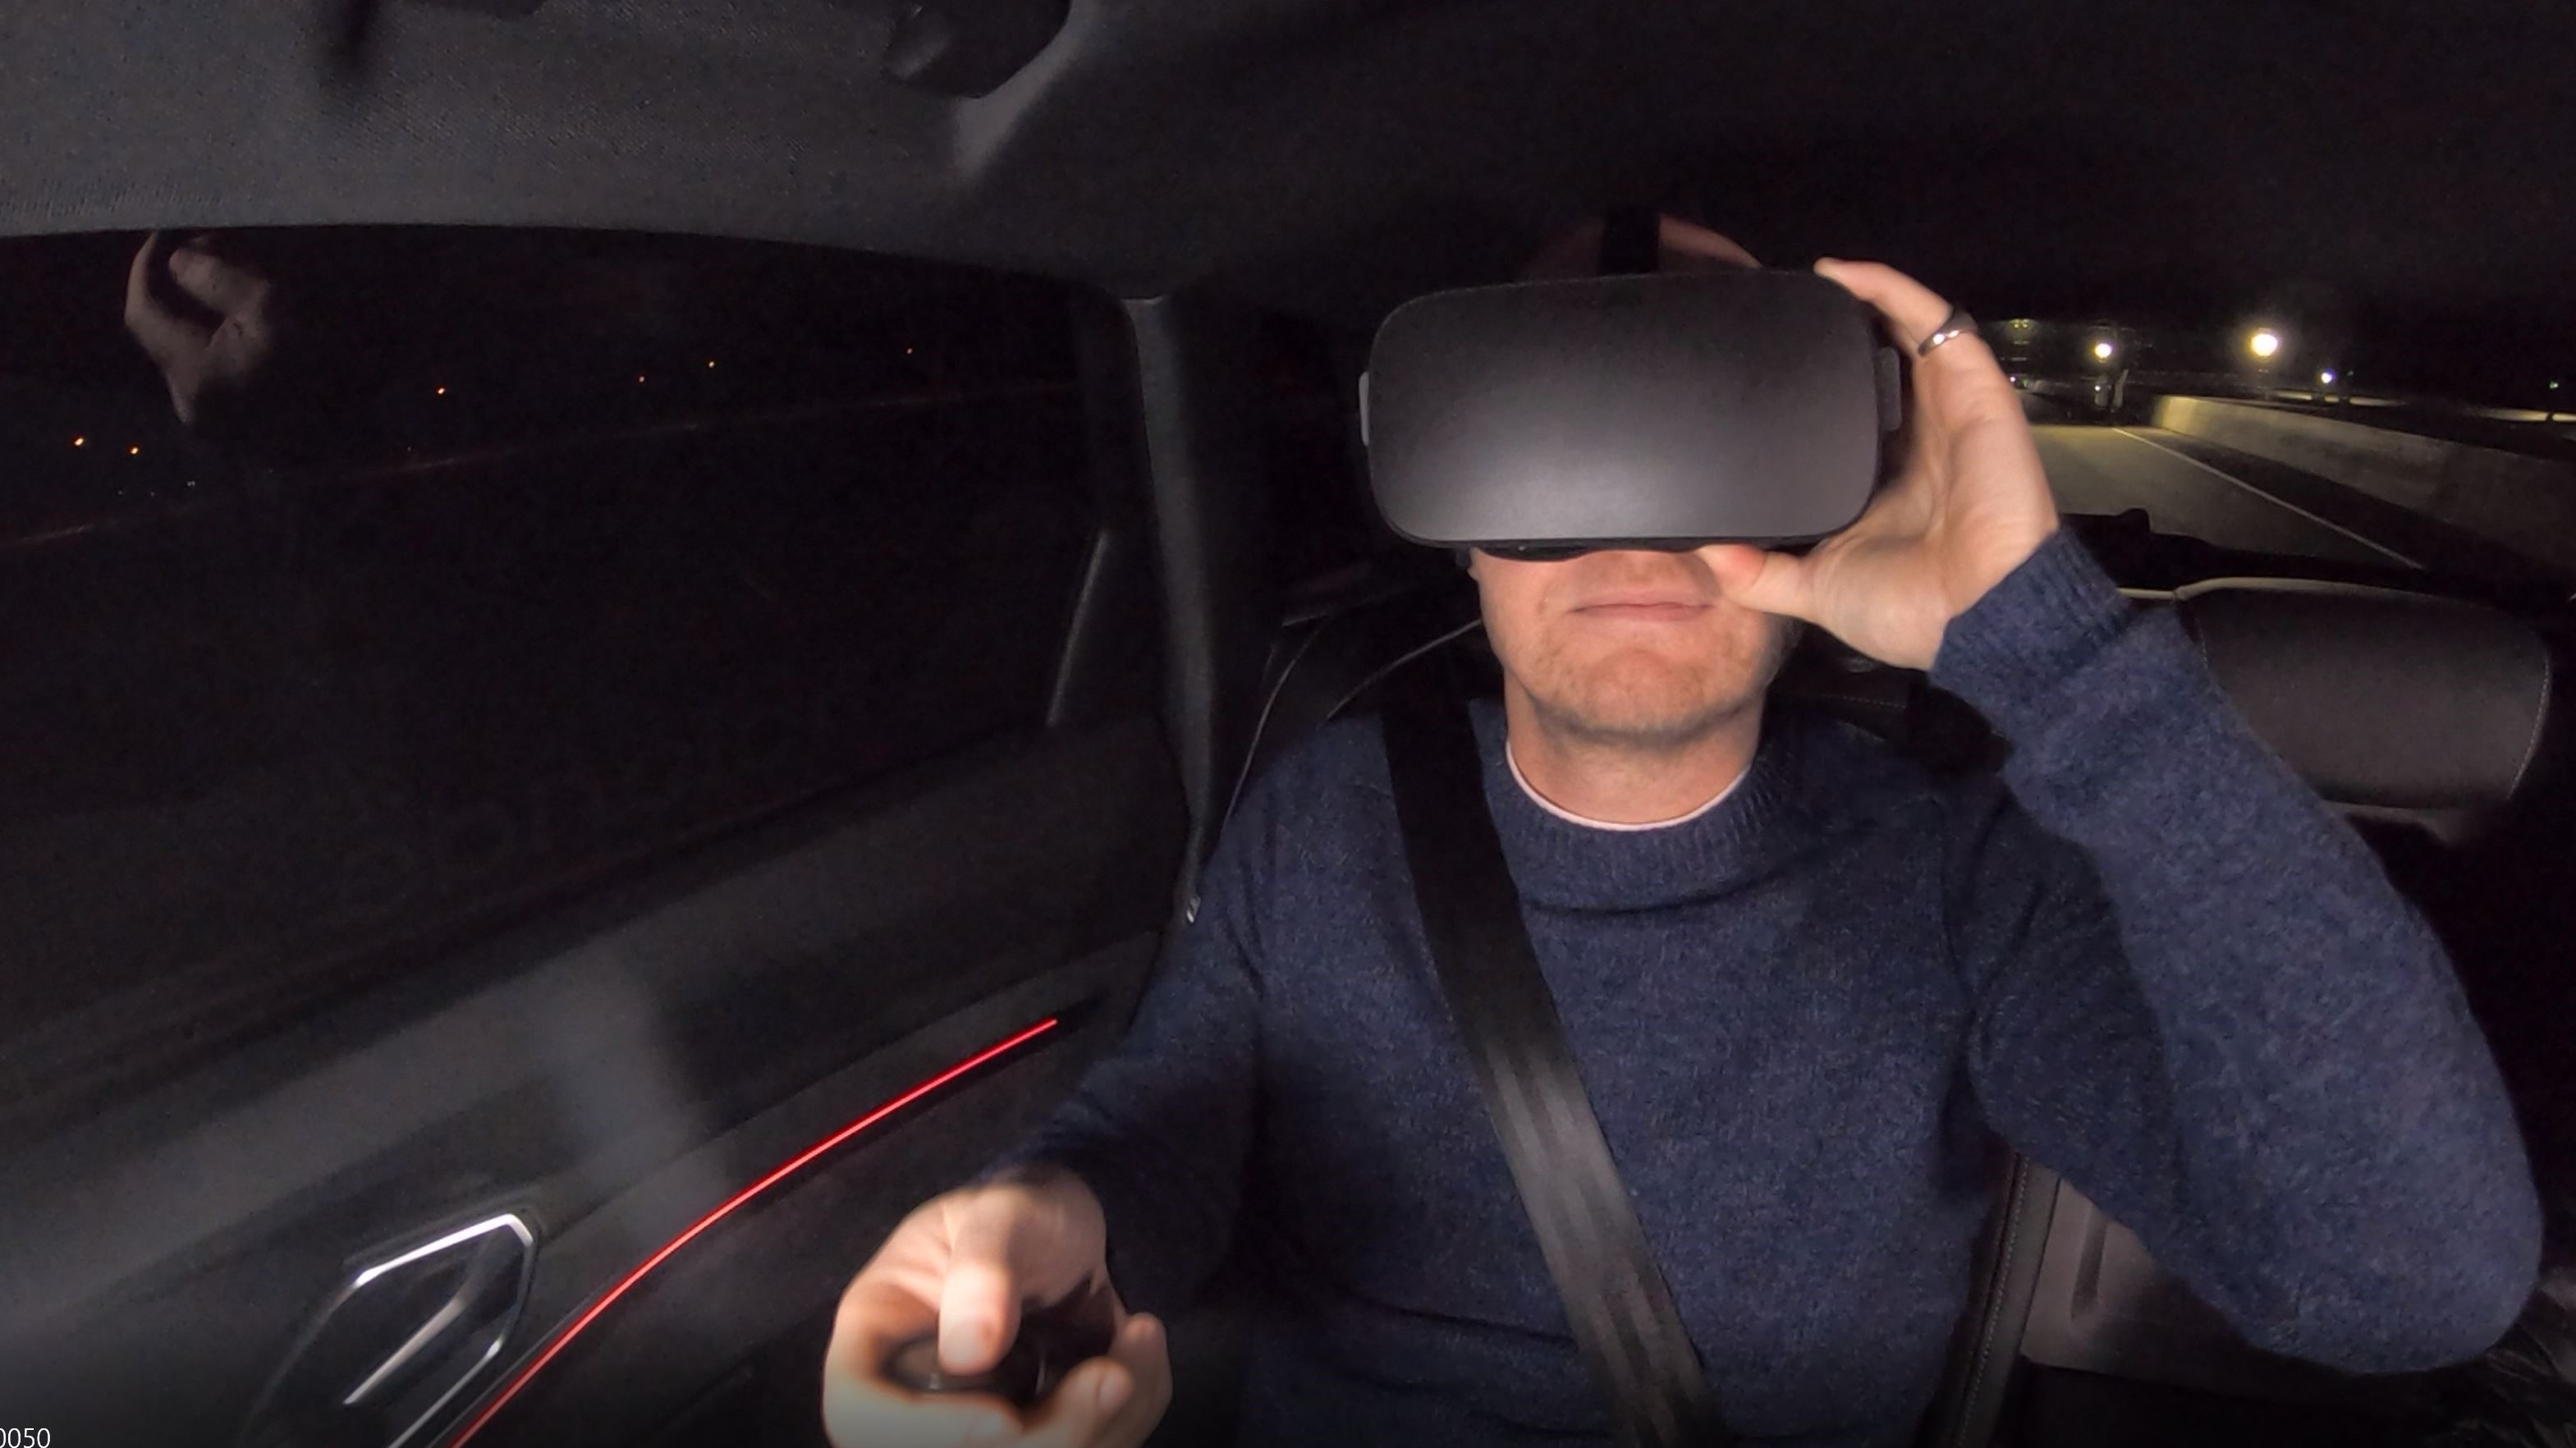 Say hello to Holoride, Audi's revolutionary in-car VR platform